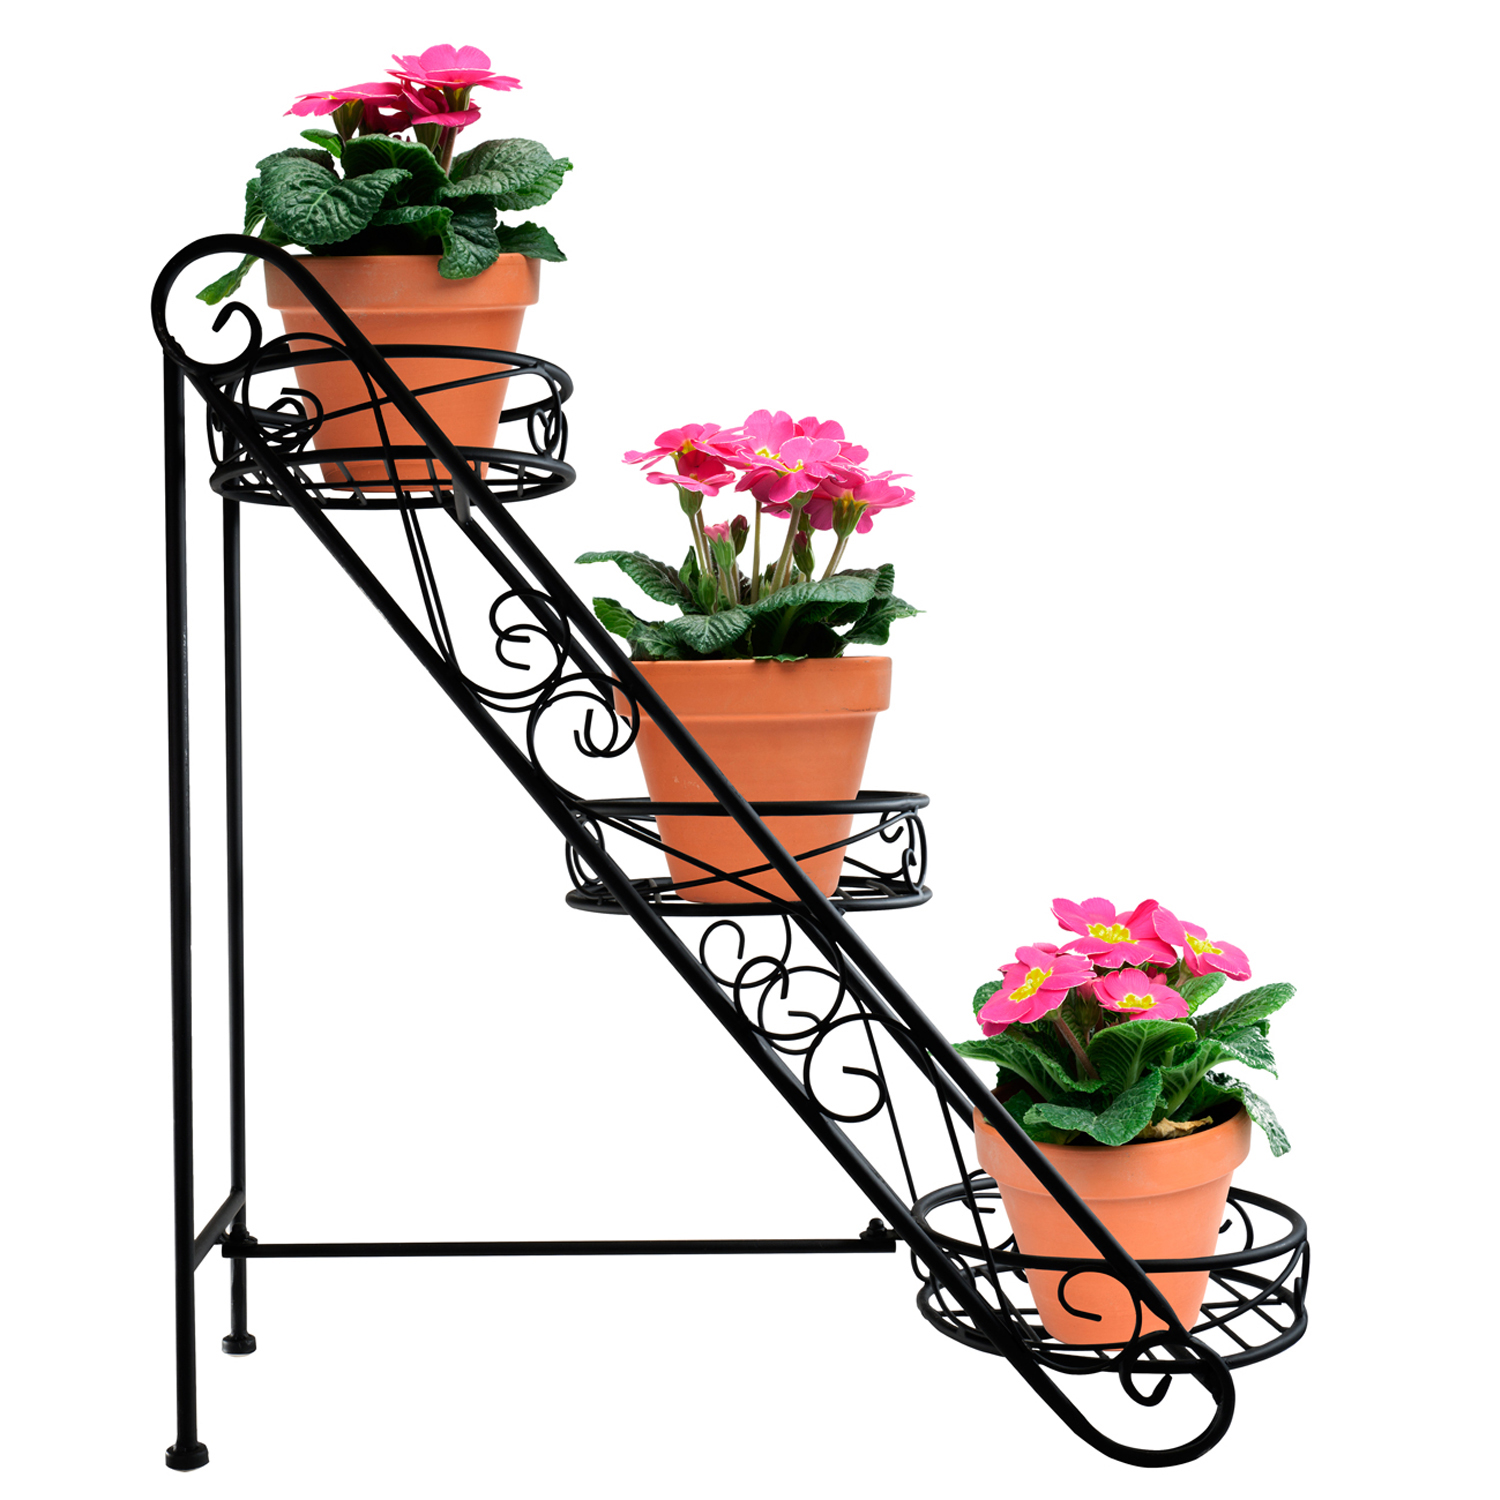 Sorbus Sorbus 3-Tier Flower Plant Stand, Slanted Flower Pot Holder by GGI International